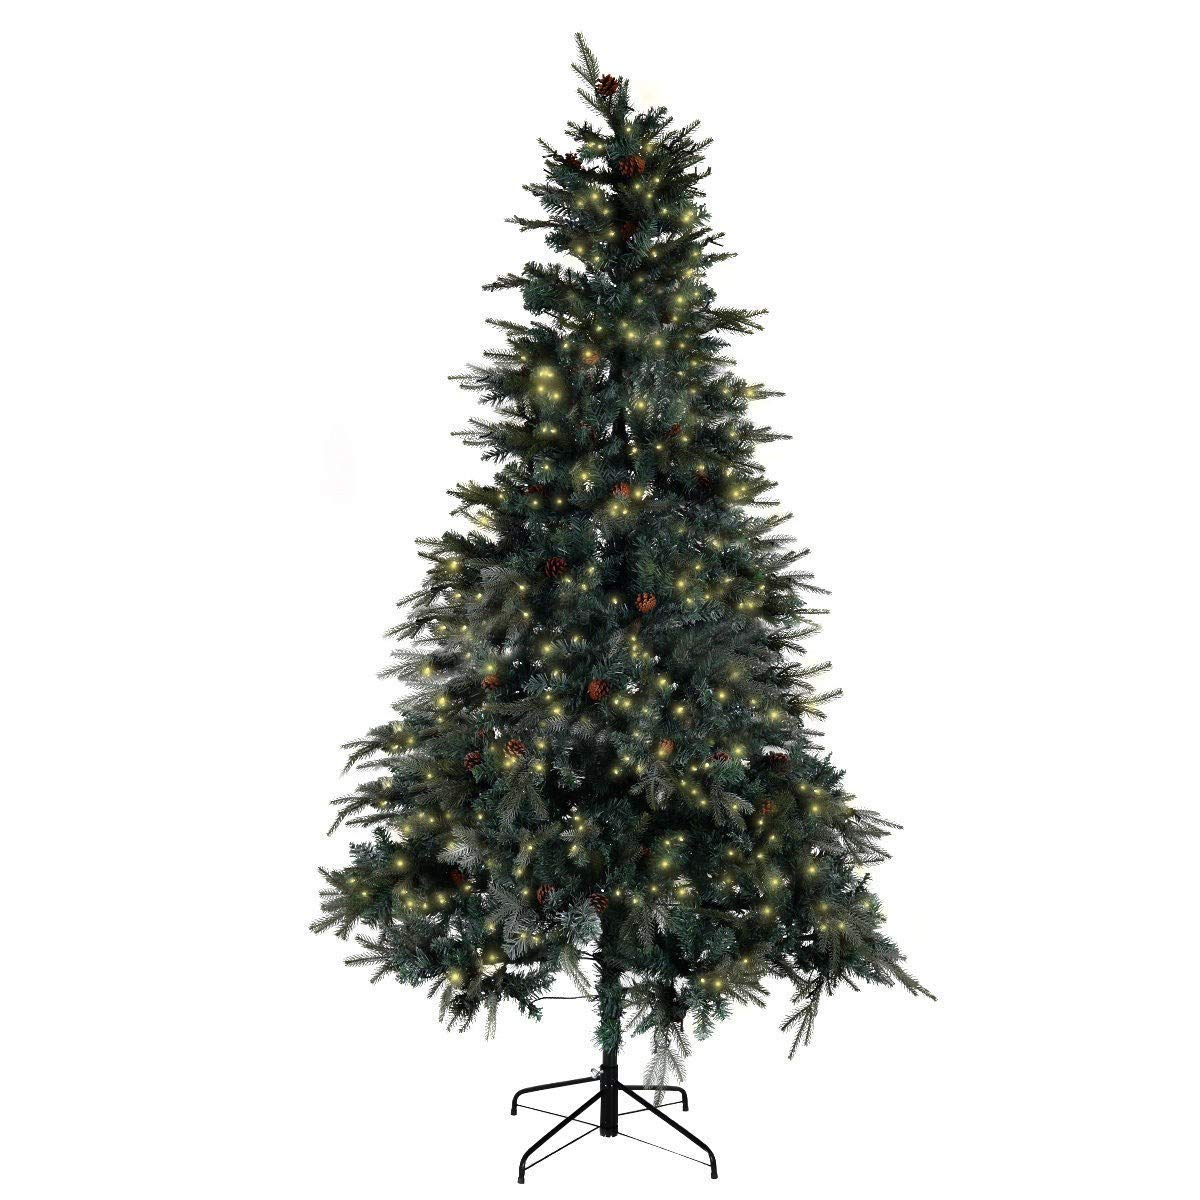 Toolsempire 7.5 ft Pre-lit Artificial Christmas Tree w/Stand & 750 LED Lights Mixed Hinged Tree for Indoor Outdoor Christmas New Year Decor